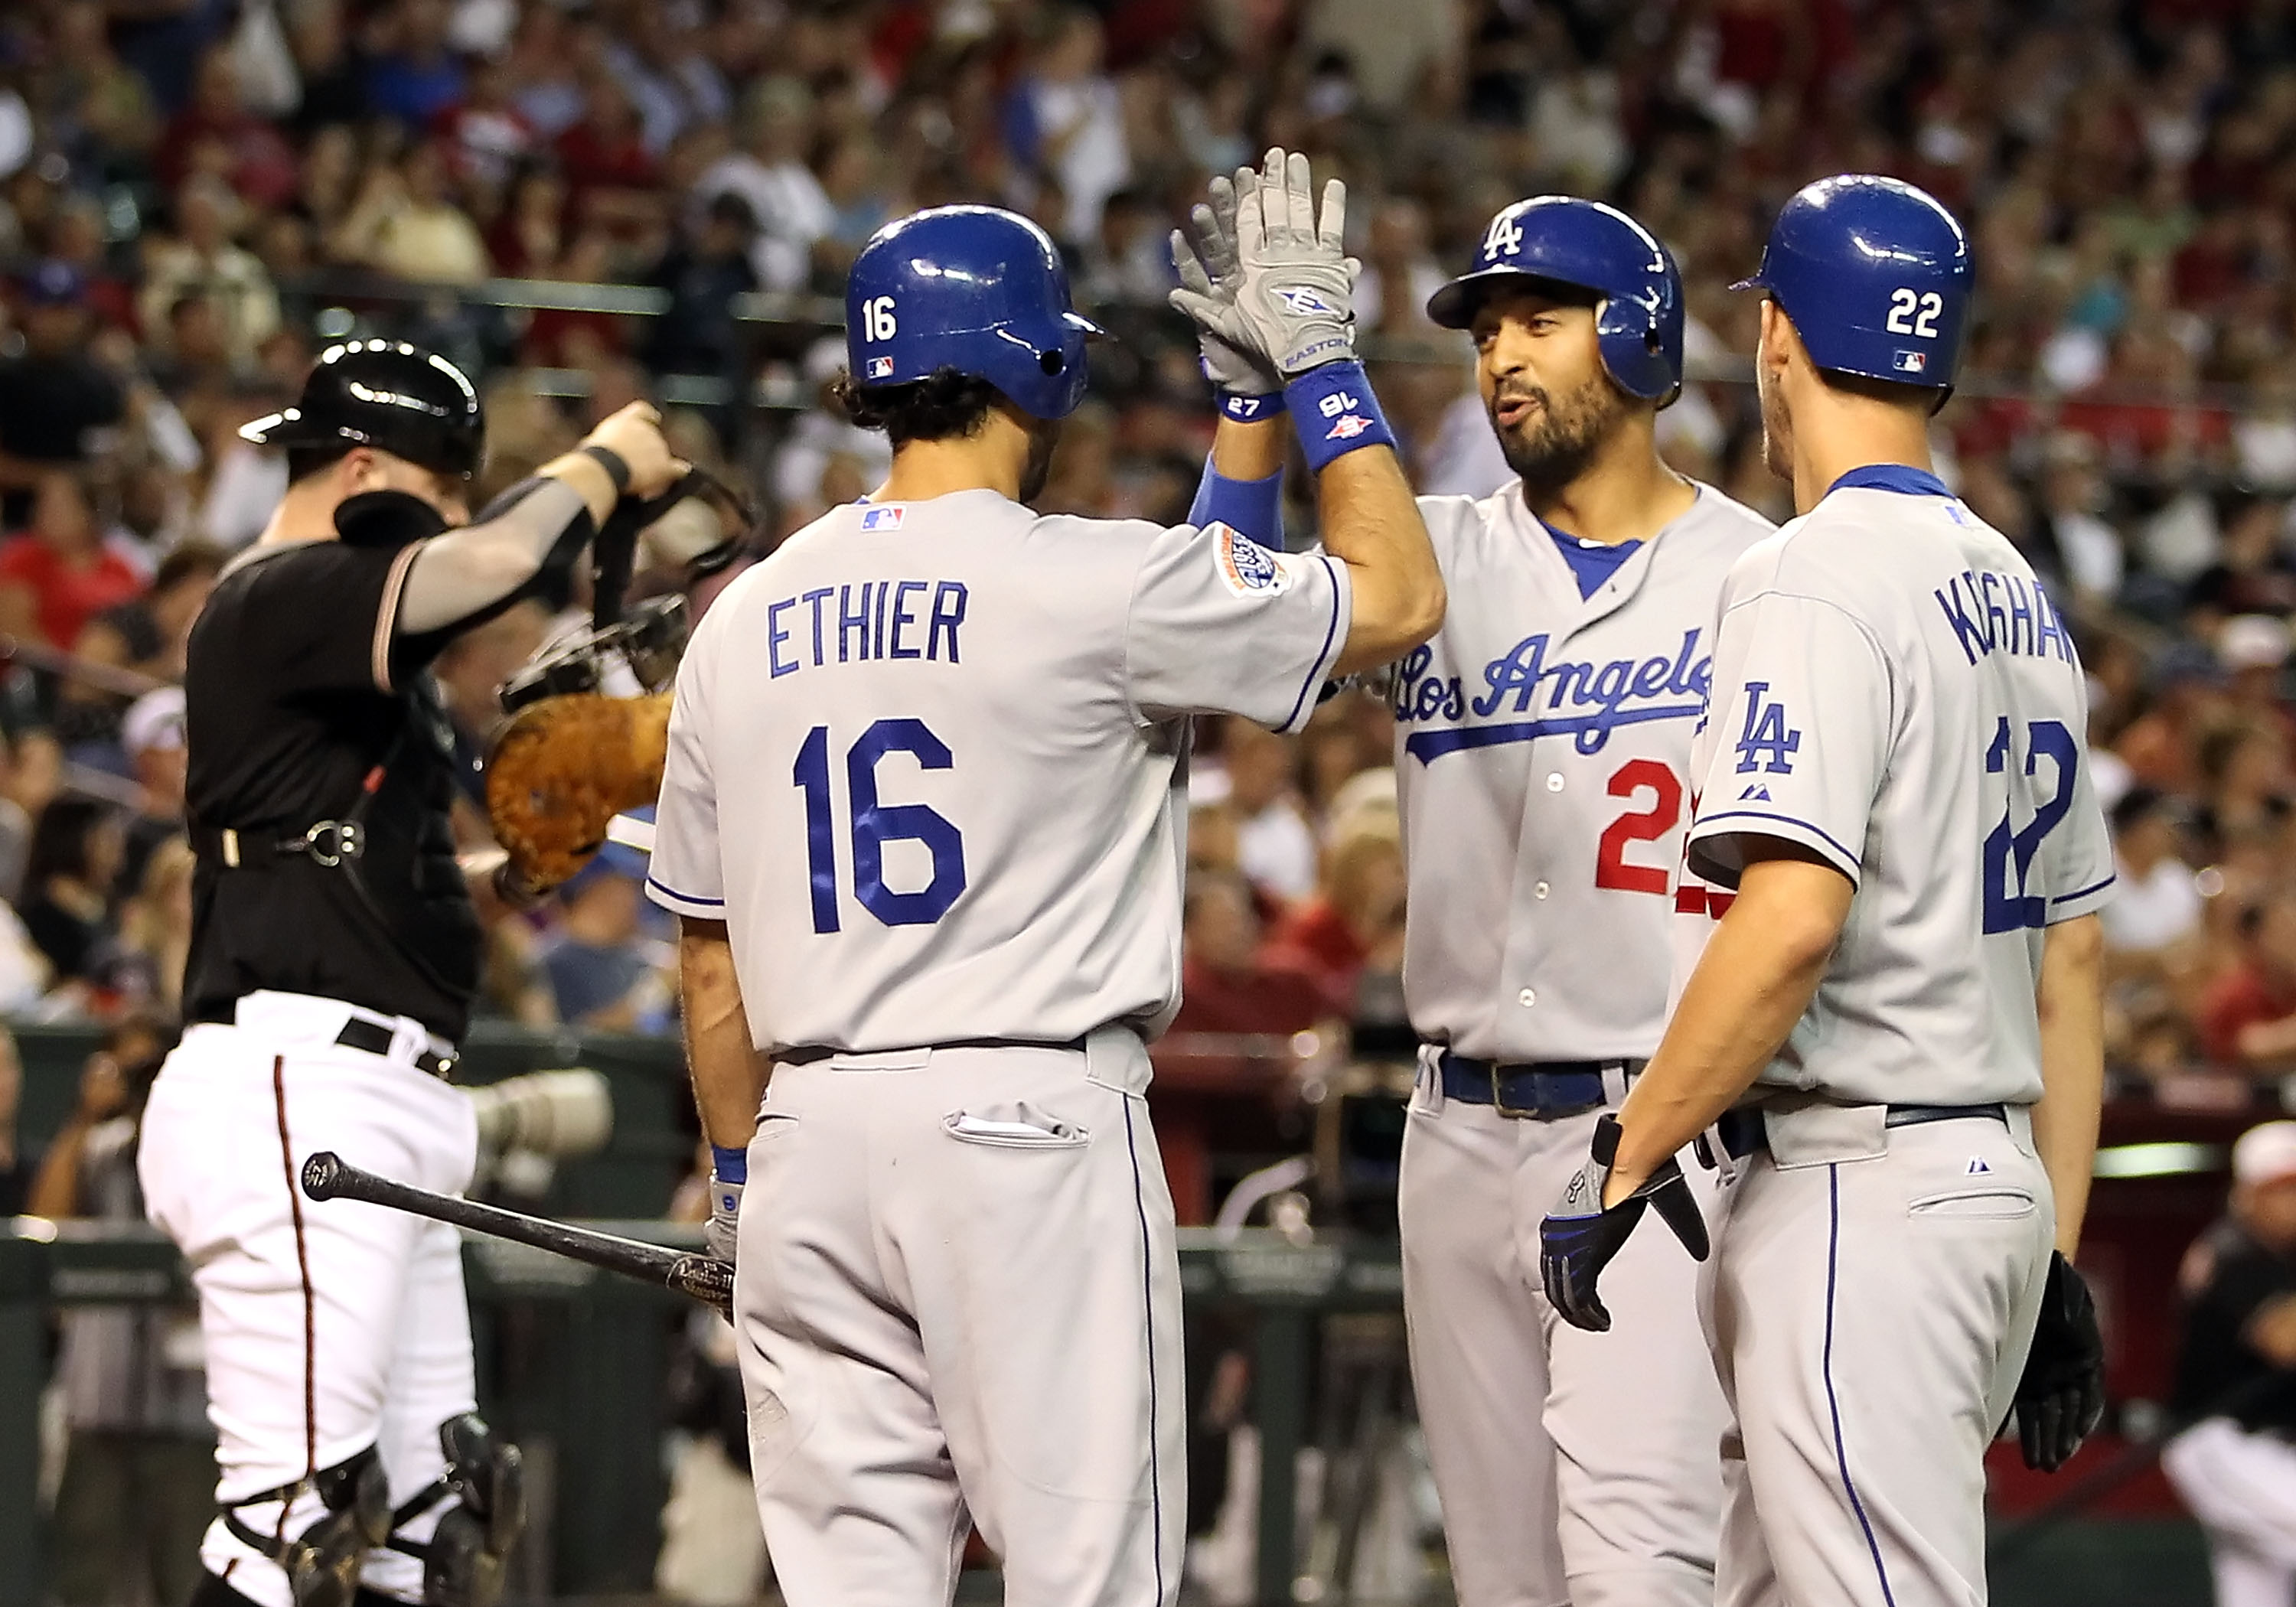 PHOENIX - JULY 03:  Matt Kemp #27 of the Los Angeles Dodgers is congratulated by teammates Andre Ethier #16 and Clayton Kershaw #22 after hitting a 2 run home run against the Arizona Diamondbacks during the second inning of the Major League Baseball game